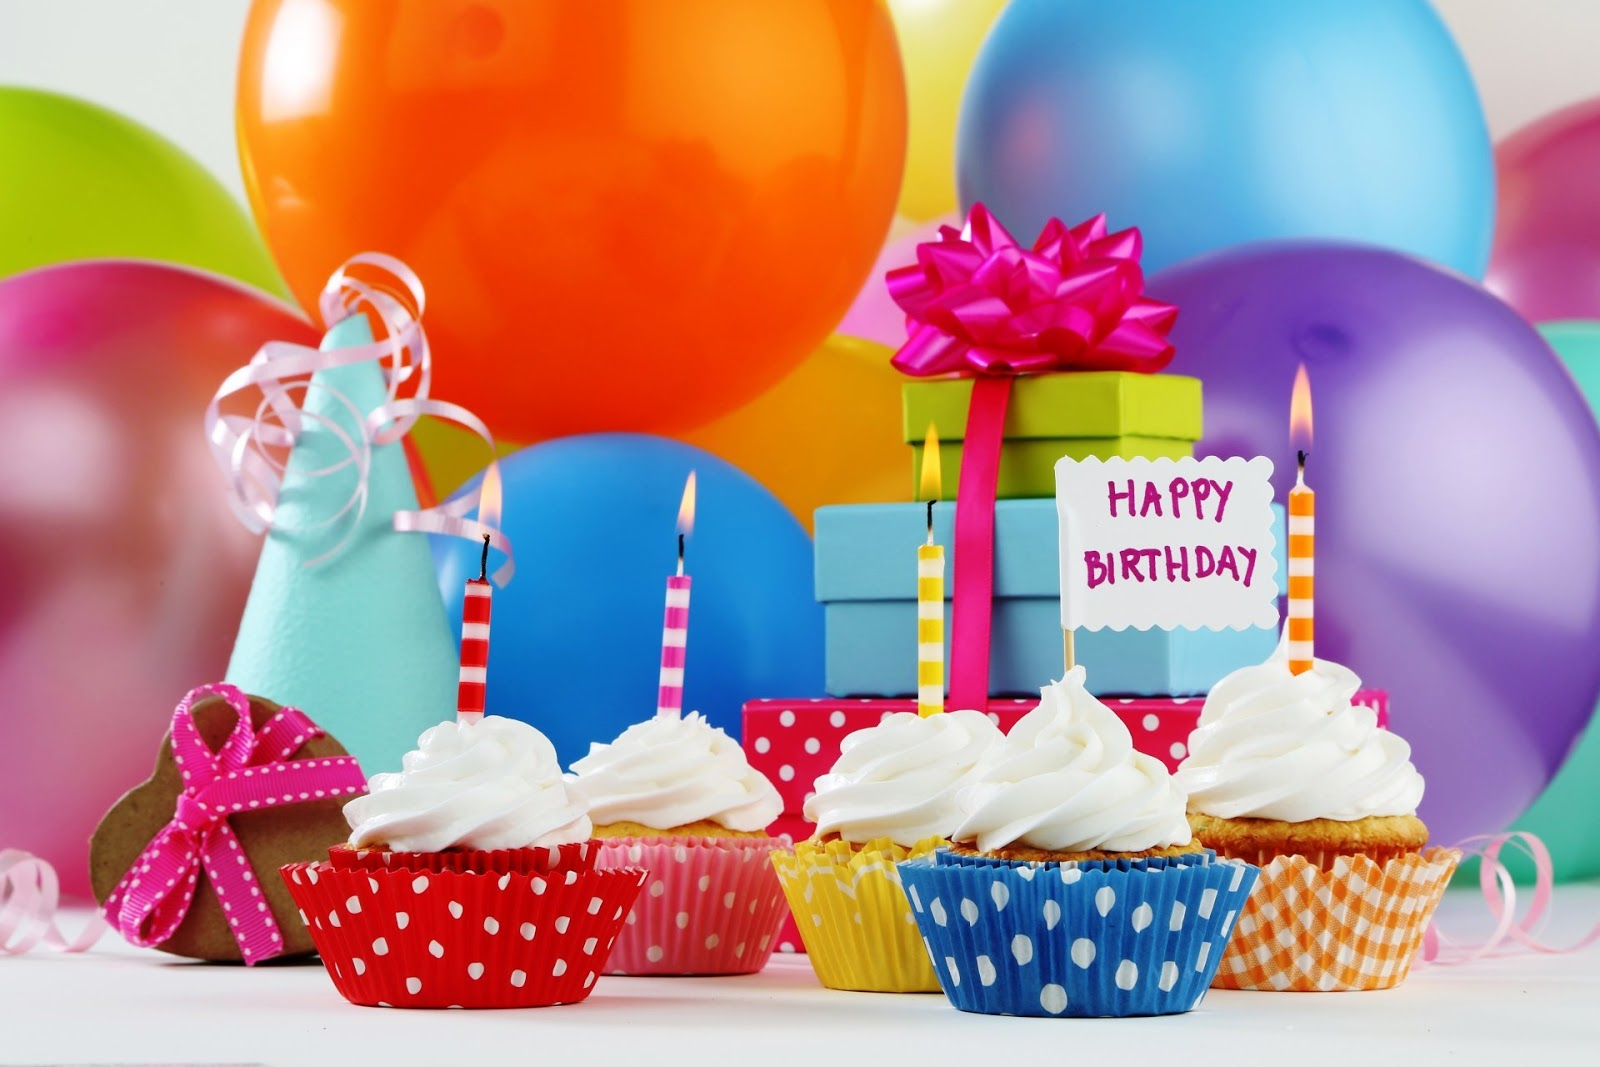 Happy Birthday Wishes Quotes For Coworker Colleague Employee